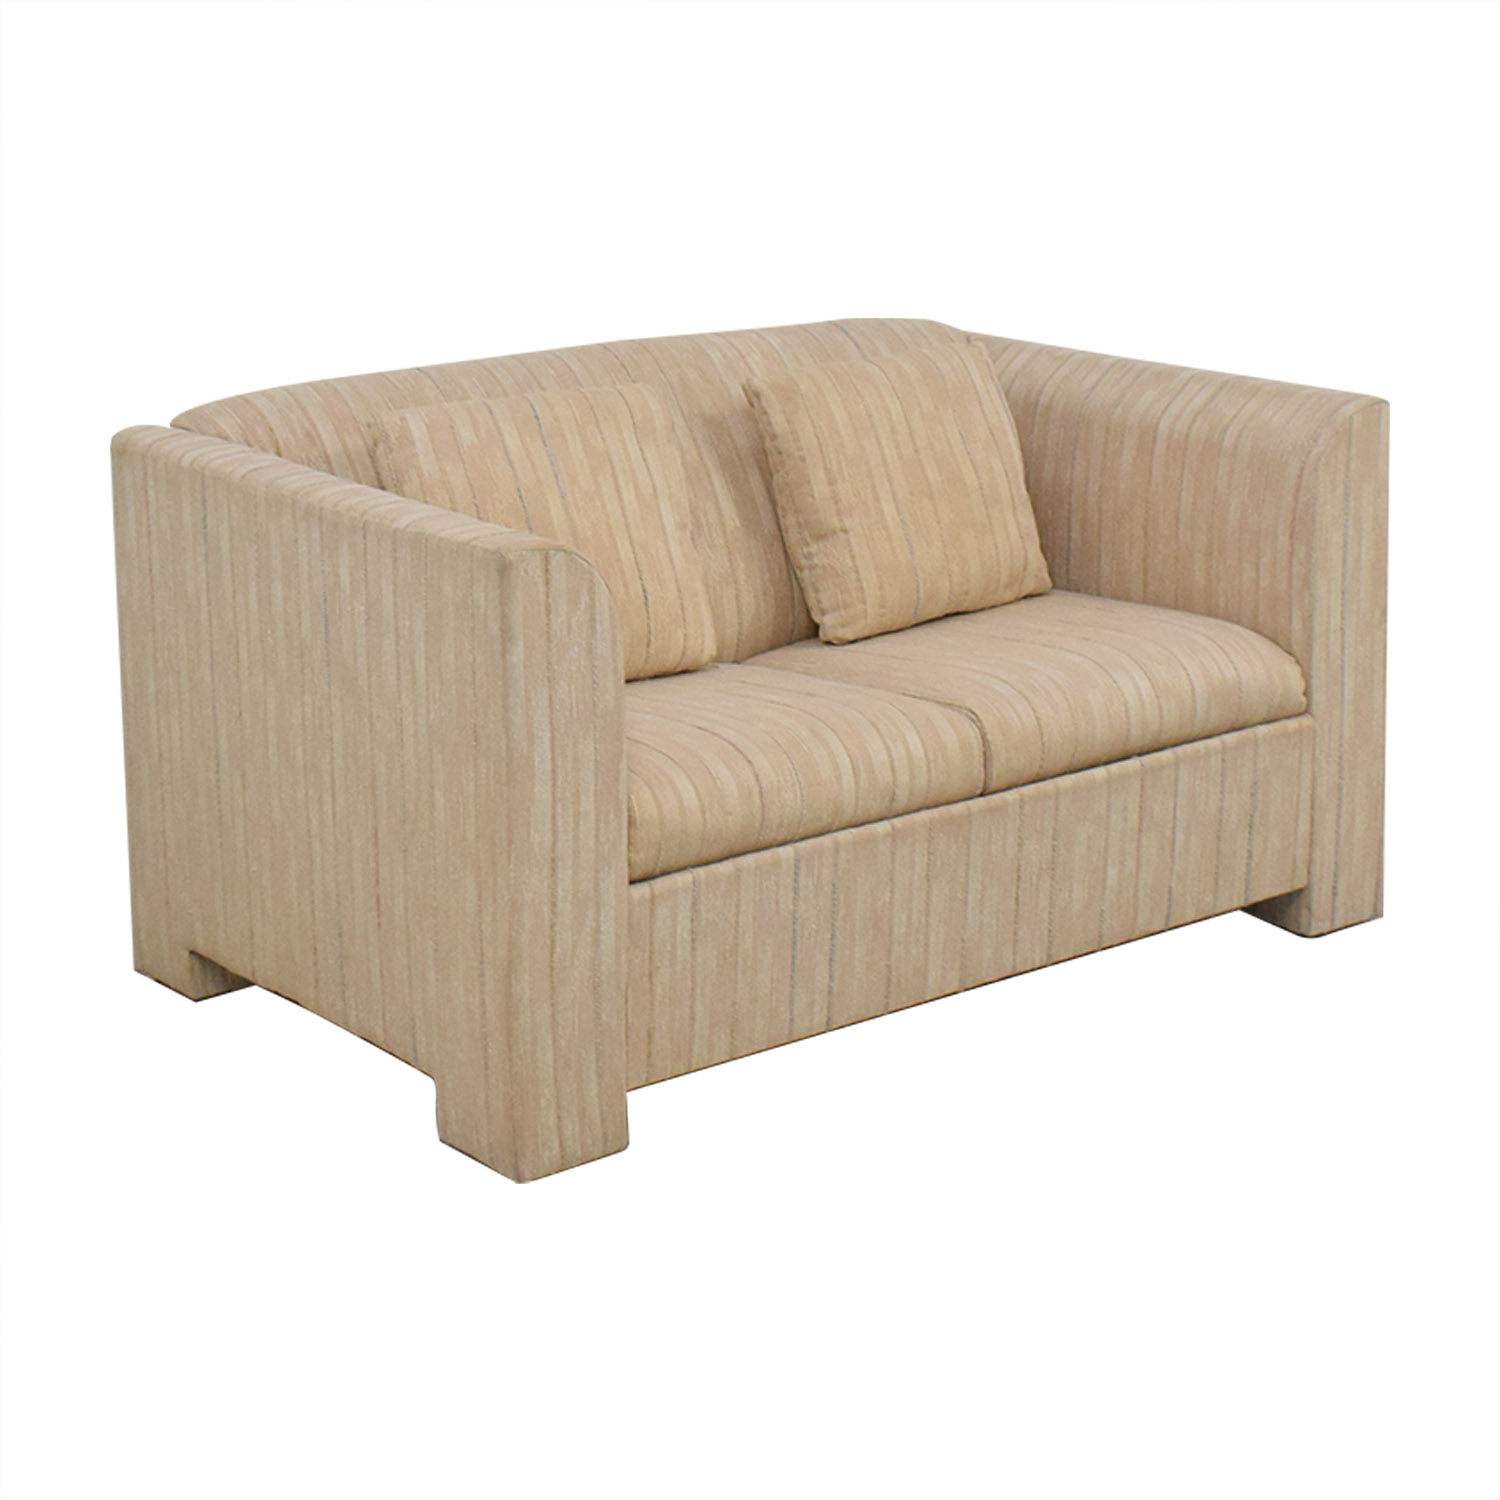 Sealy Furniture Twin Sleeper Loveseat sale